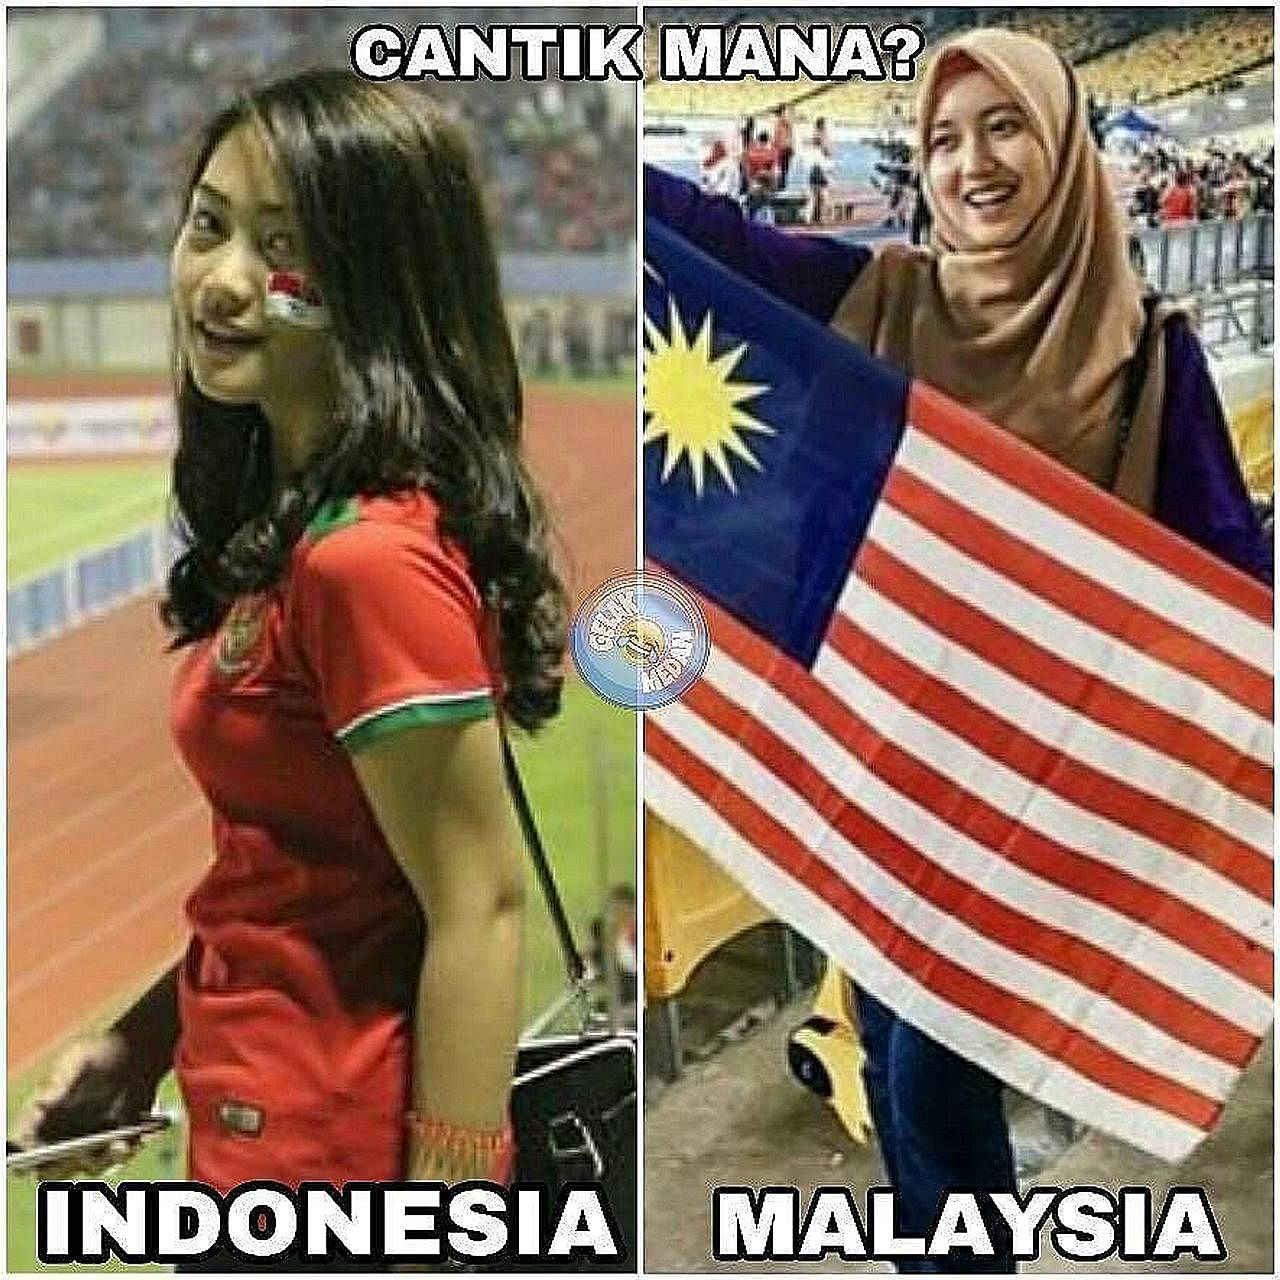 Who's the fairer of them? Ahead of the football semi-final between Indonesia and Malaysia, social media users extended the competition between the two countries to another between fans in the stands.